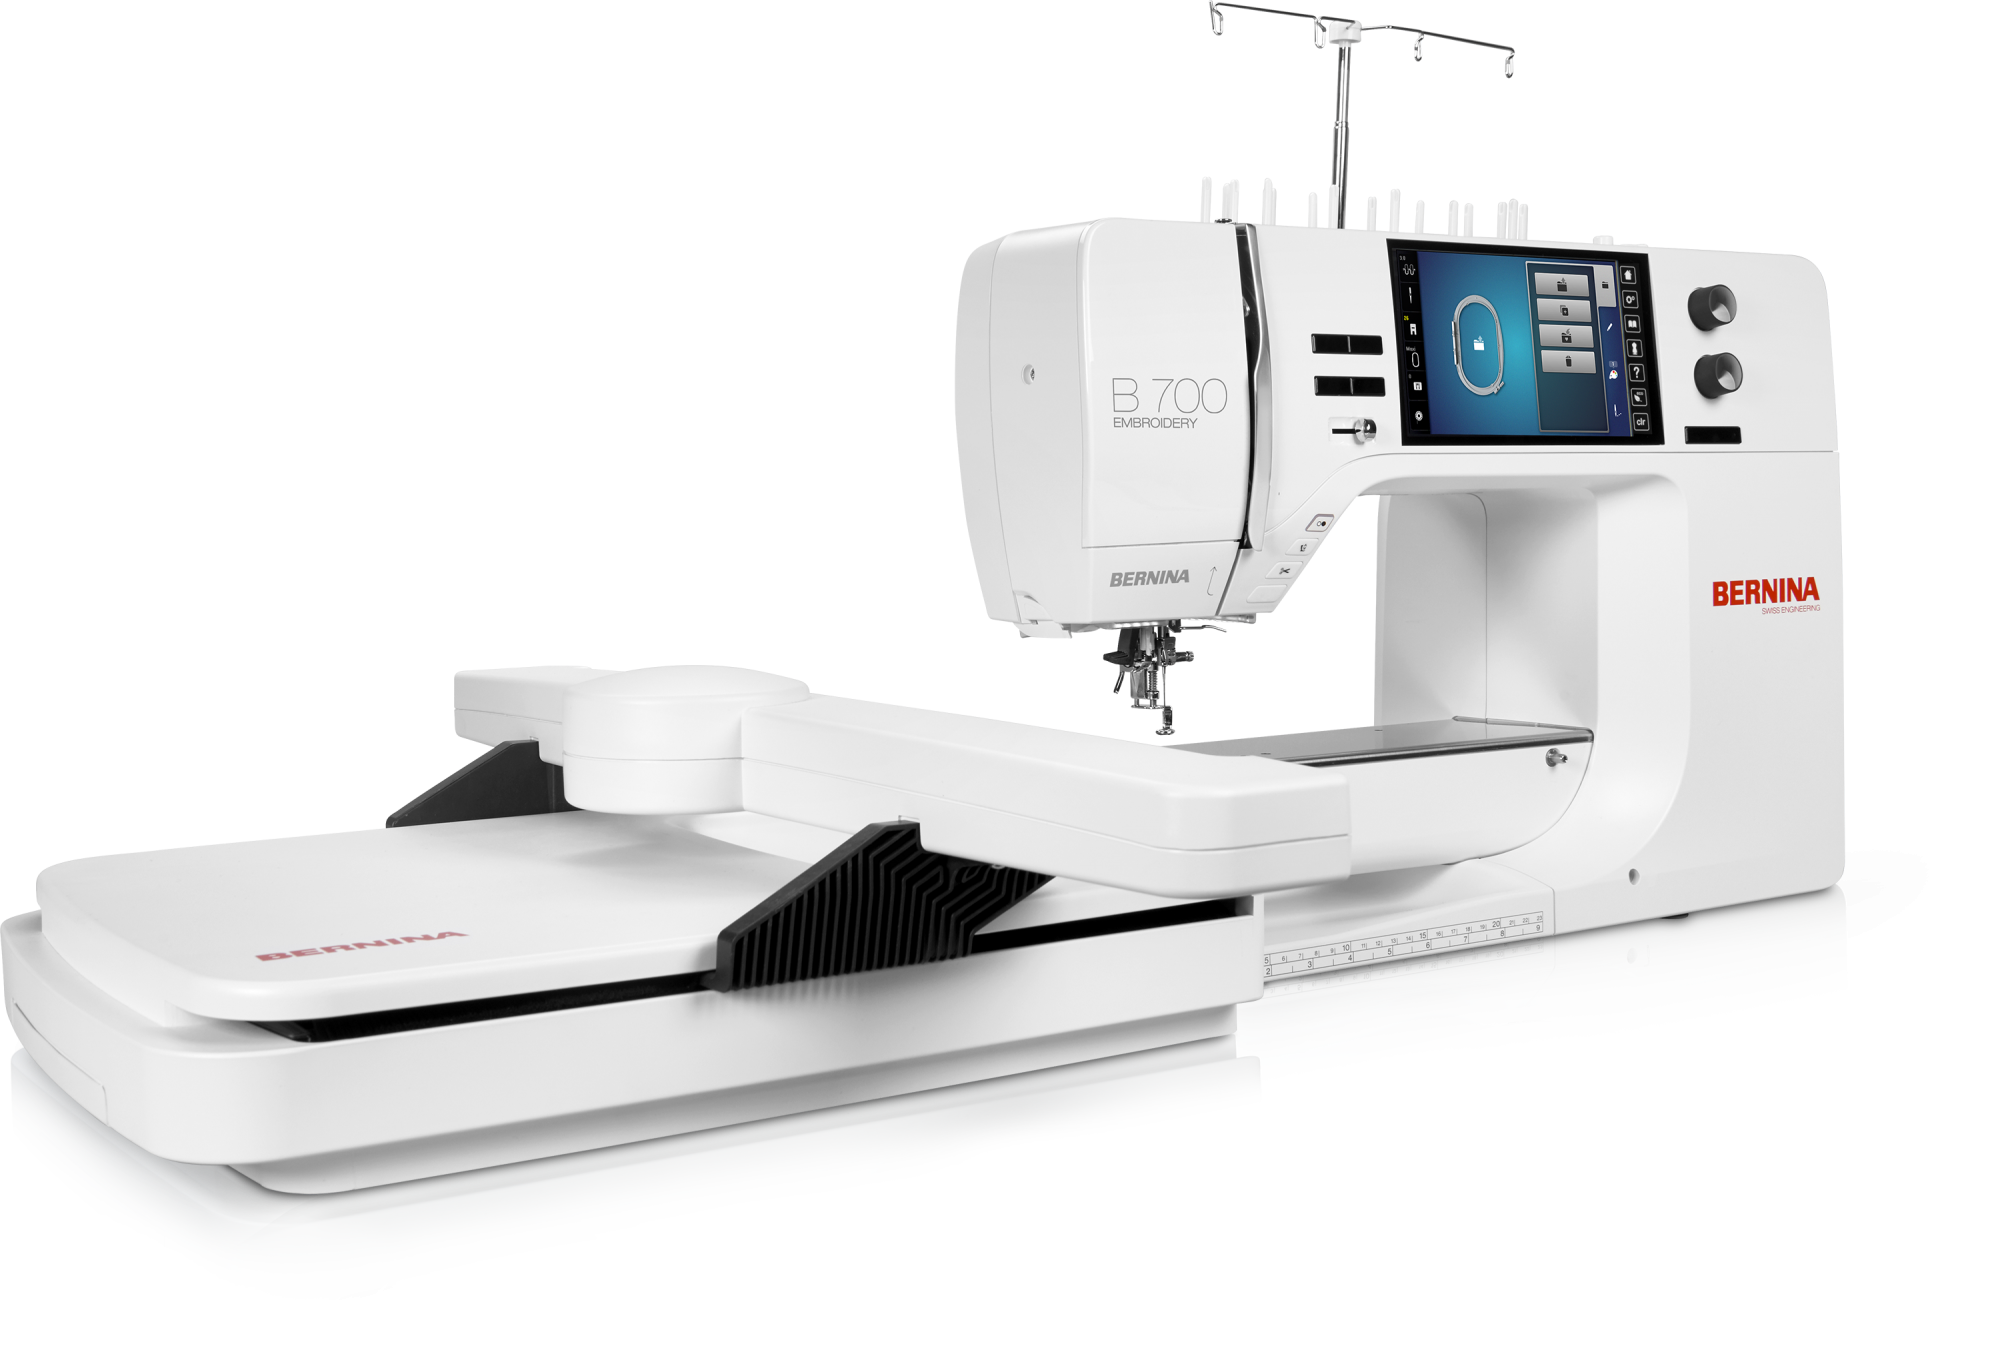 BERNINA 700E Embroidery only